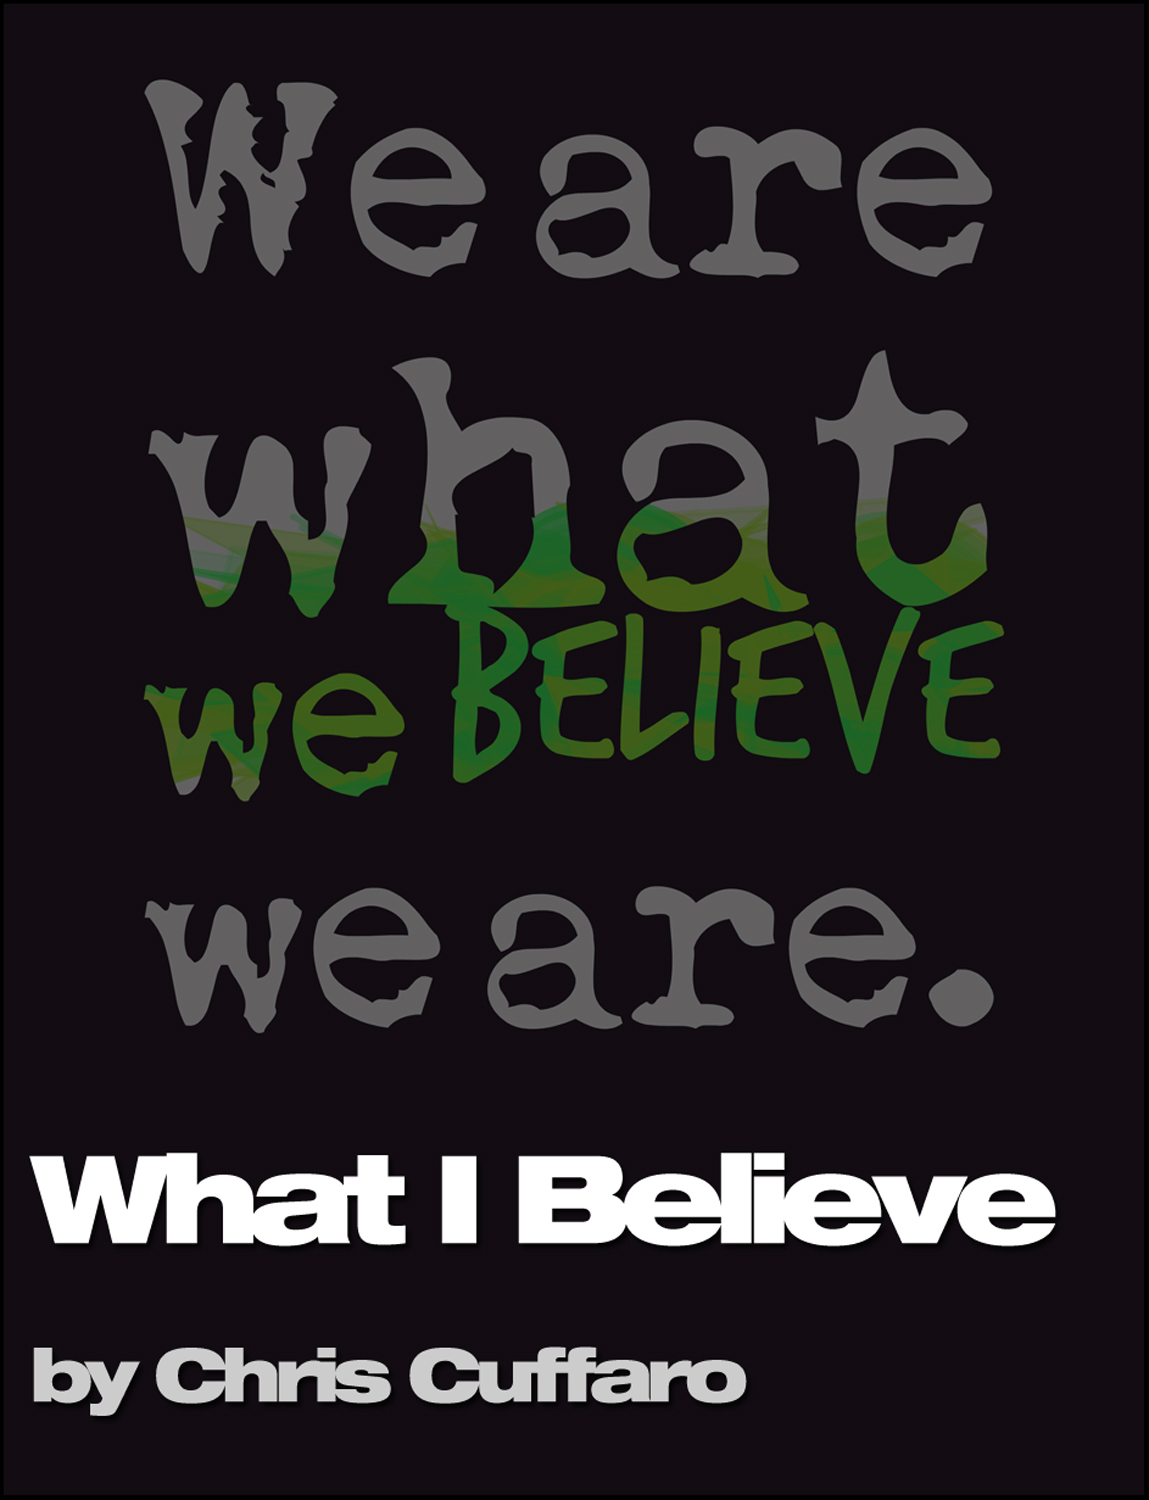 What do you believe (This I Believe)?